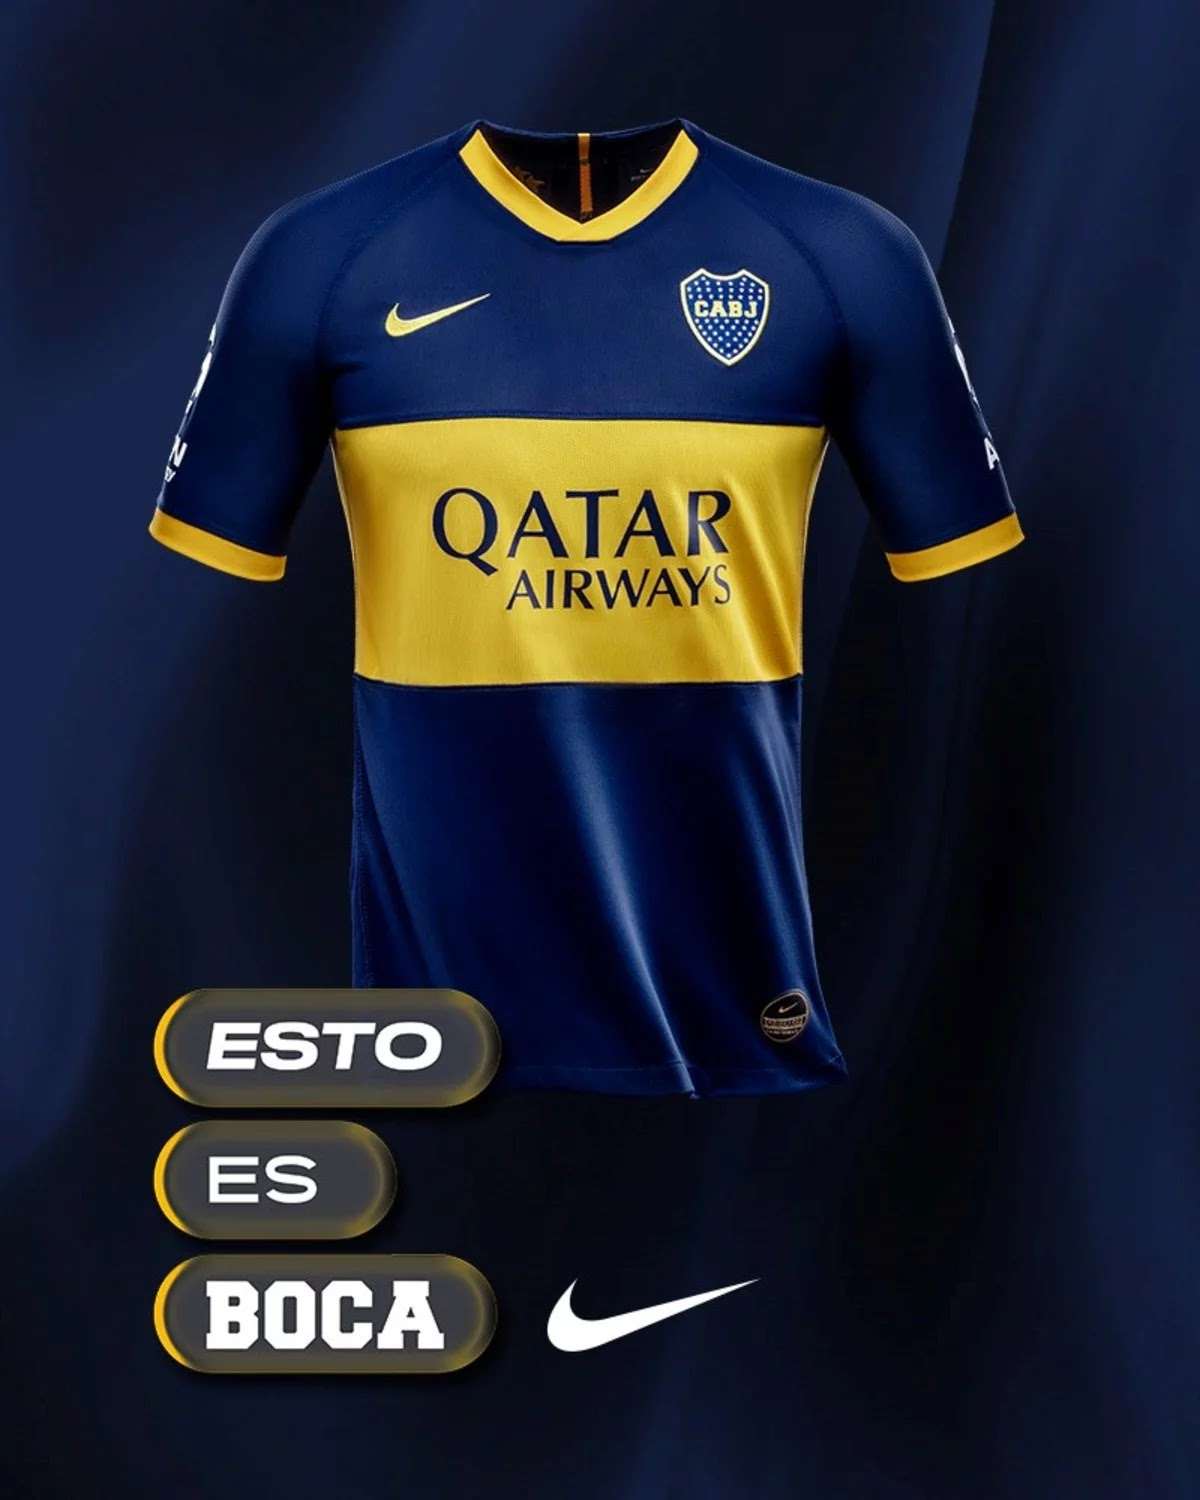 online store 811b1 bfb56 No More Nike After 23 Years: Boca Juniors Signs Record ...